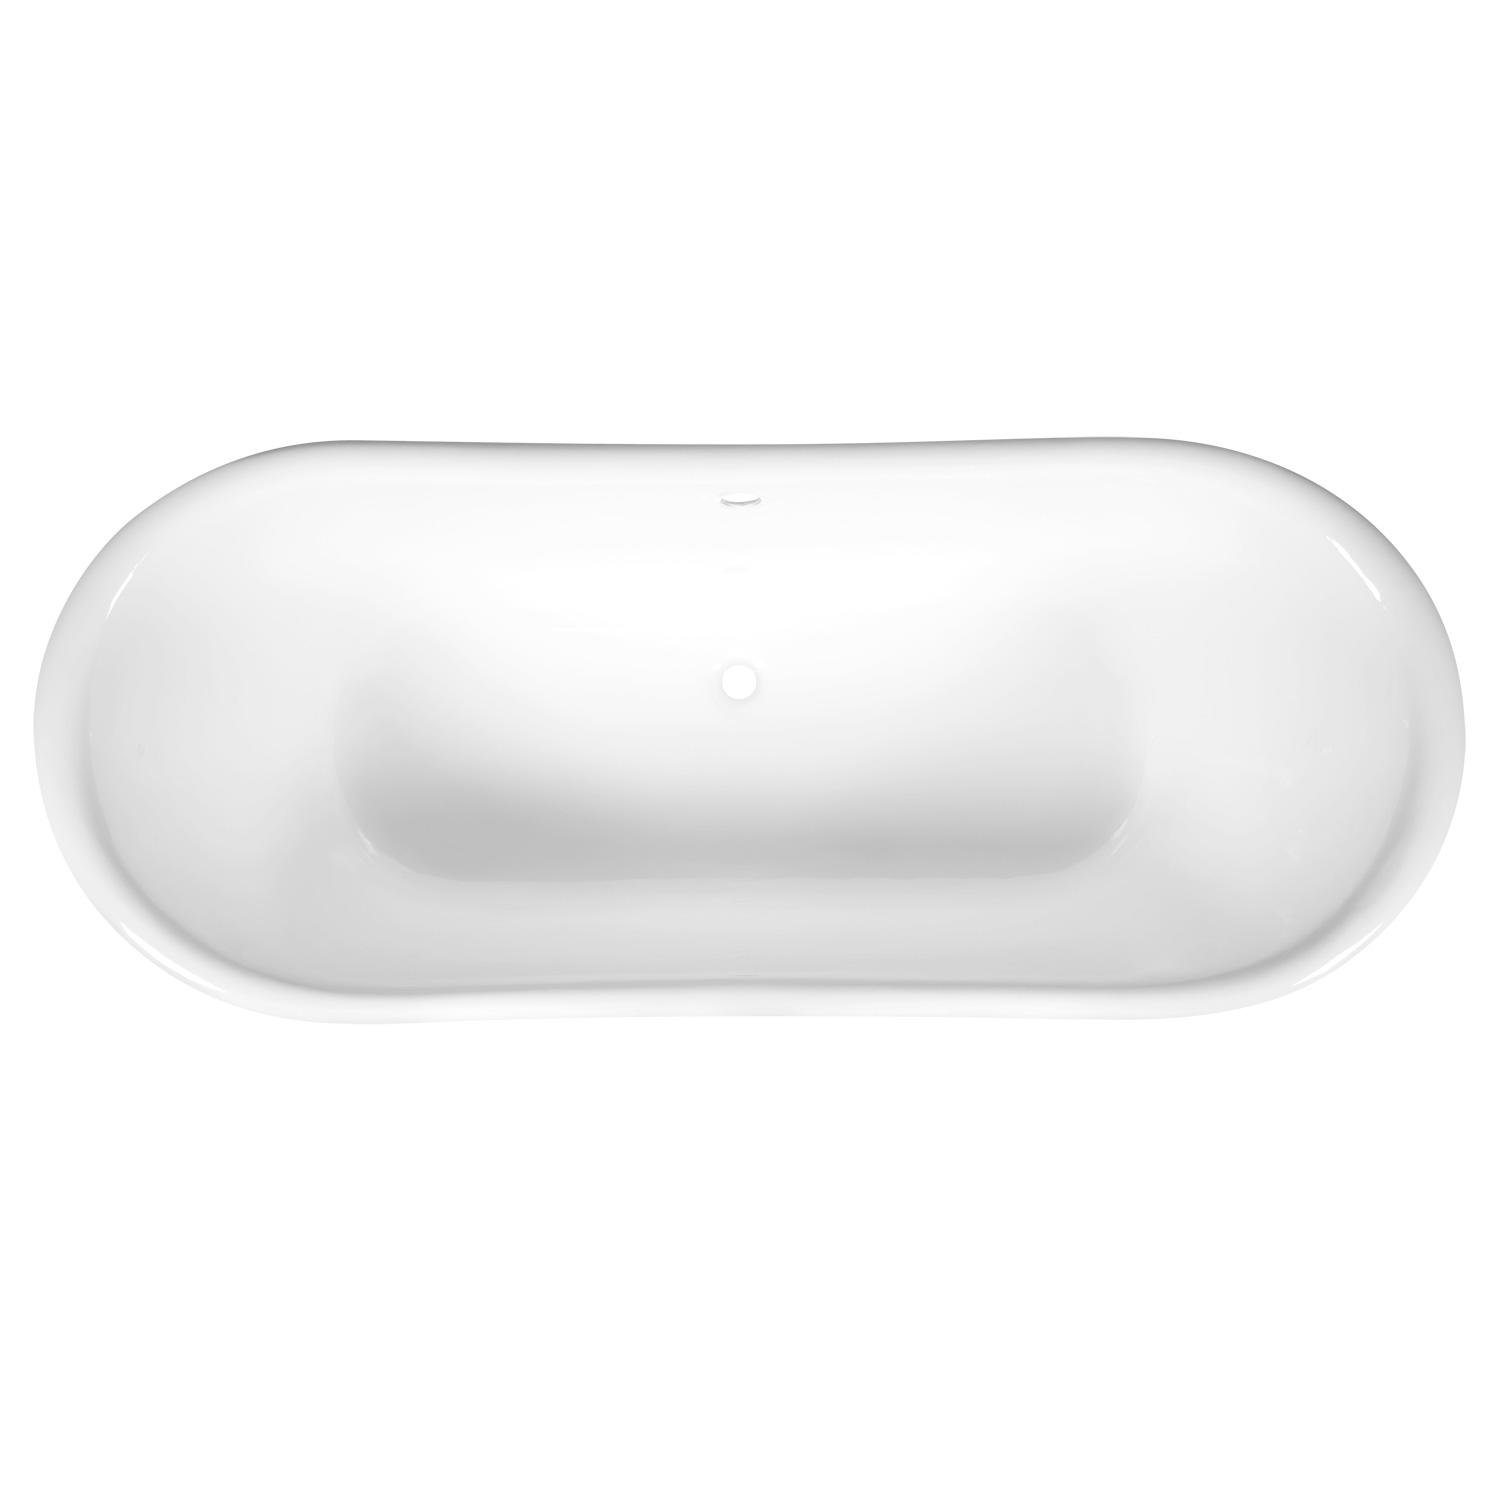 Signature Hardware 394539 Langly 72 Cast Iron Double Slipper Pedestal Tub with 7 Rim Holes